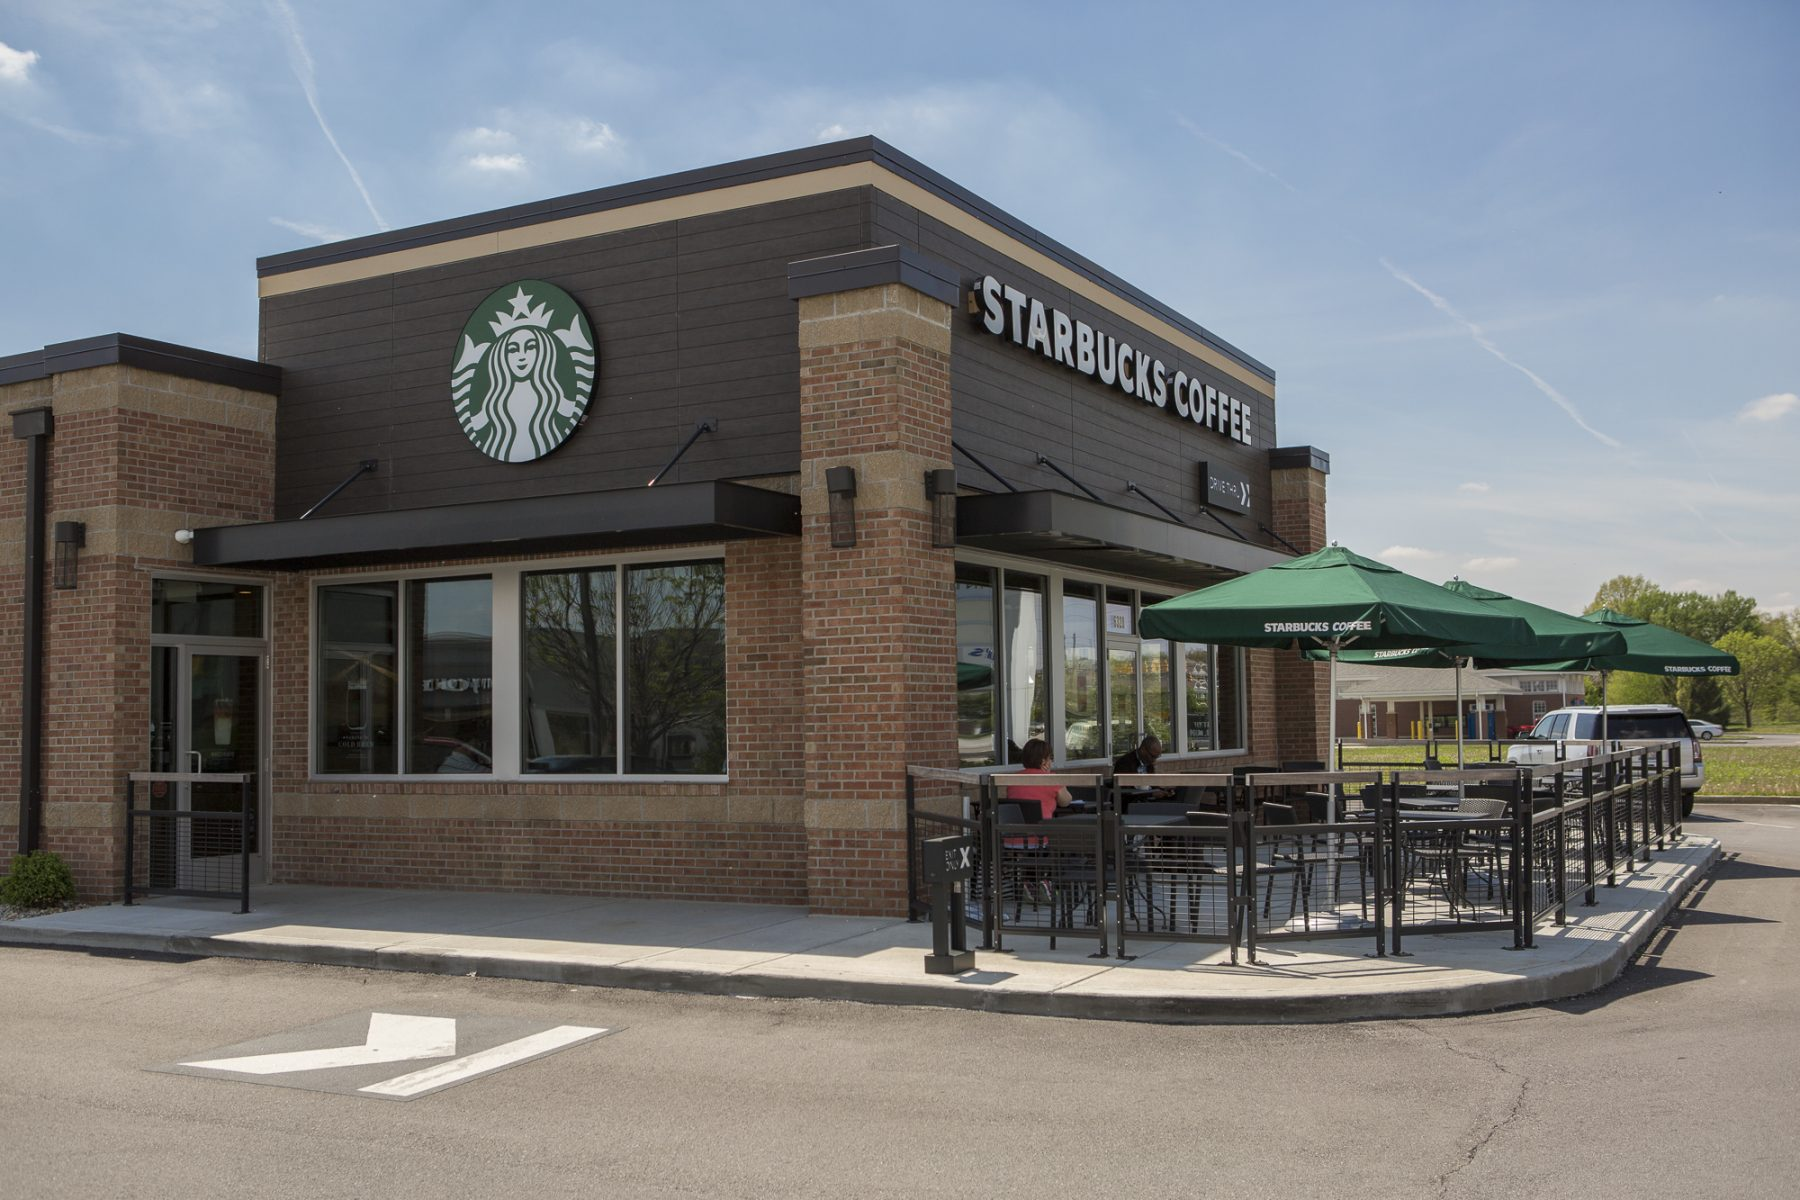 starbucks-capital-construction-indianapolis-4